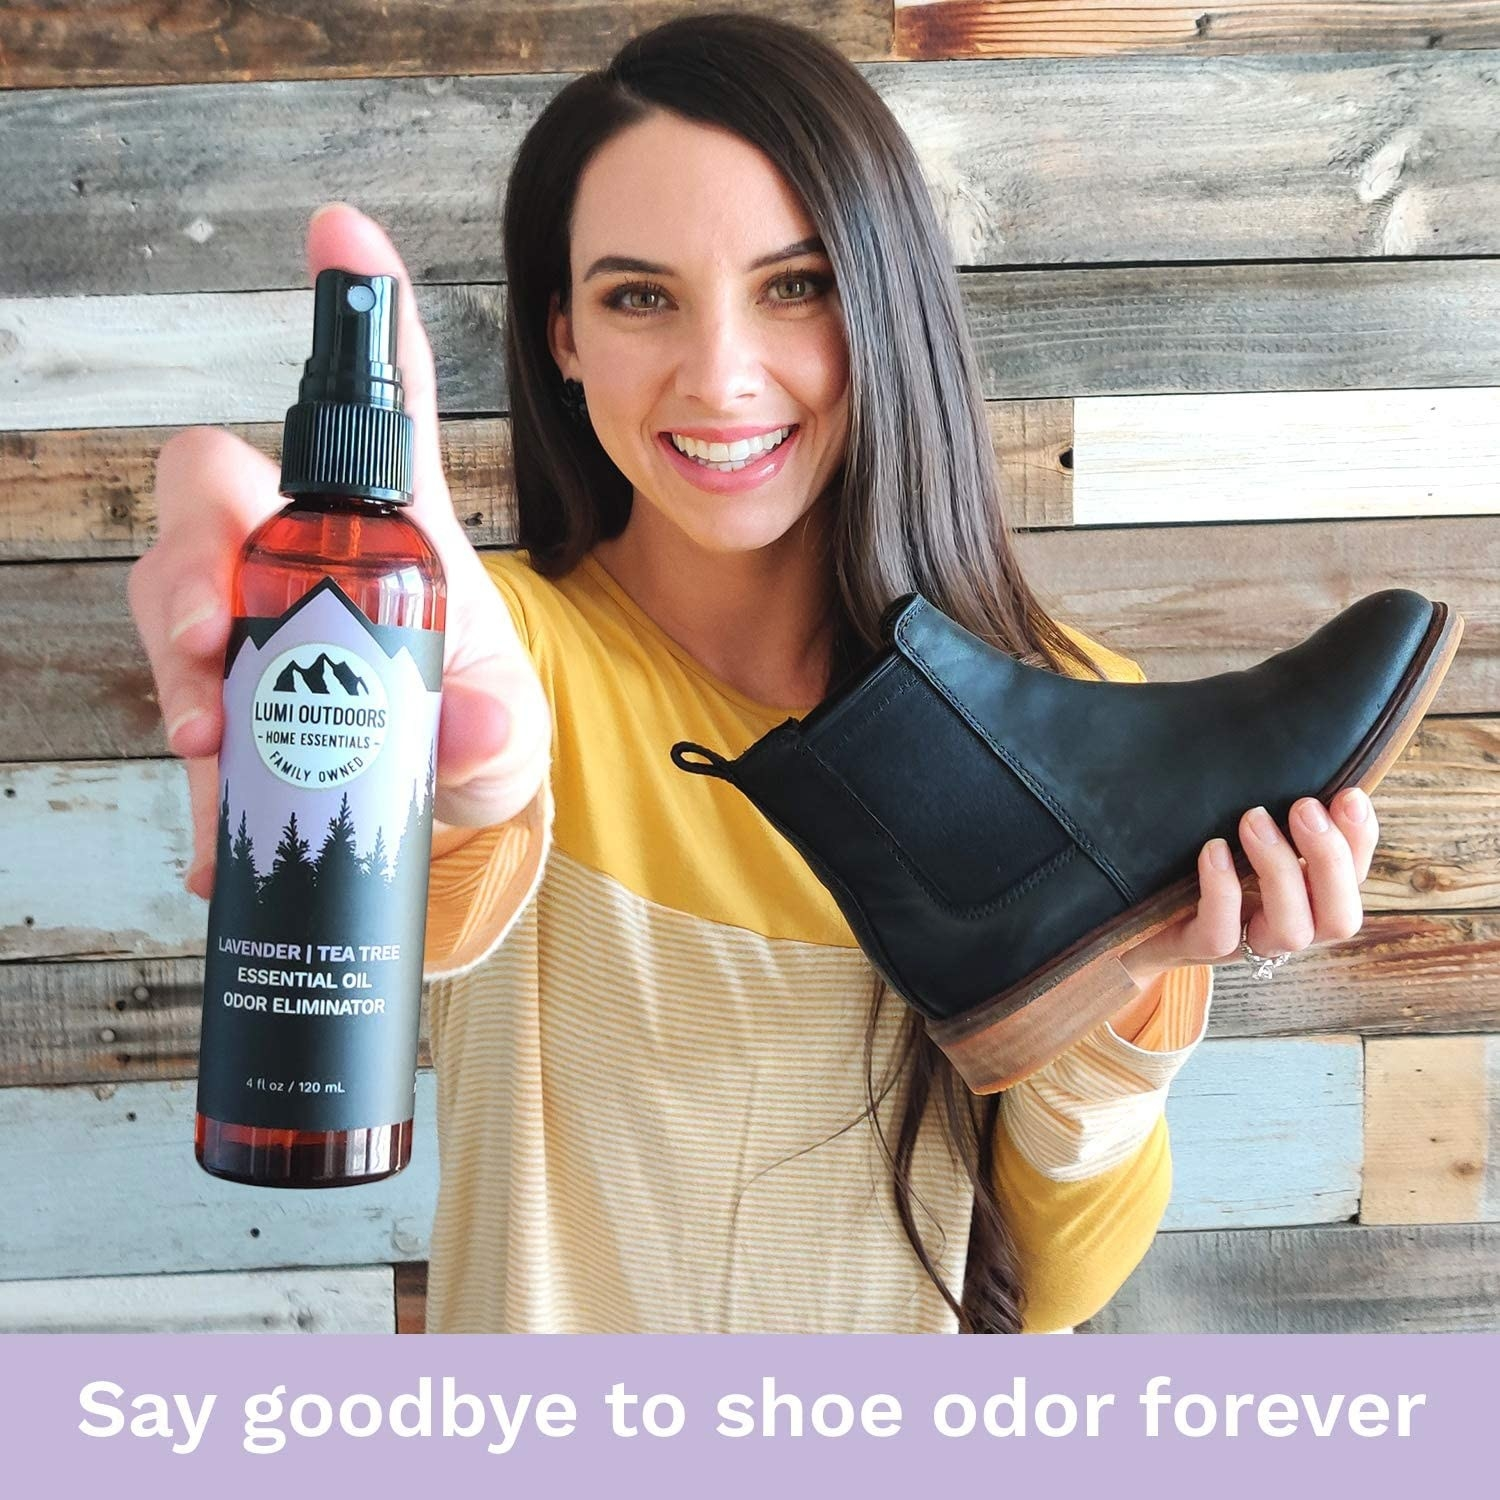 """Model holding a shoe and the spray bottle with text on the image that says, """"say goodbye to shoe odor forever"""""""